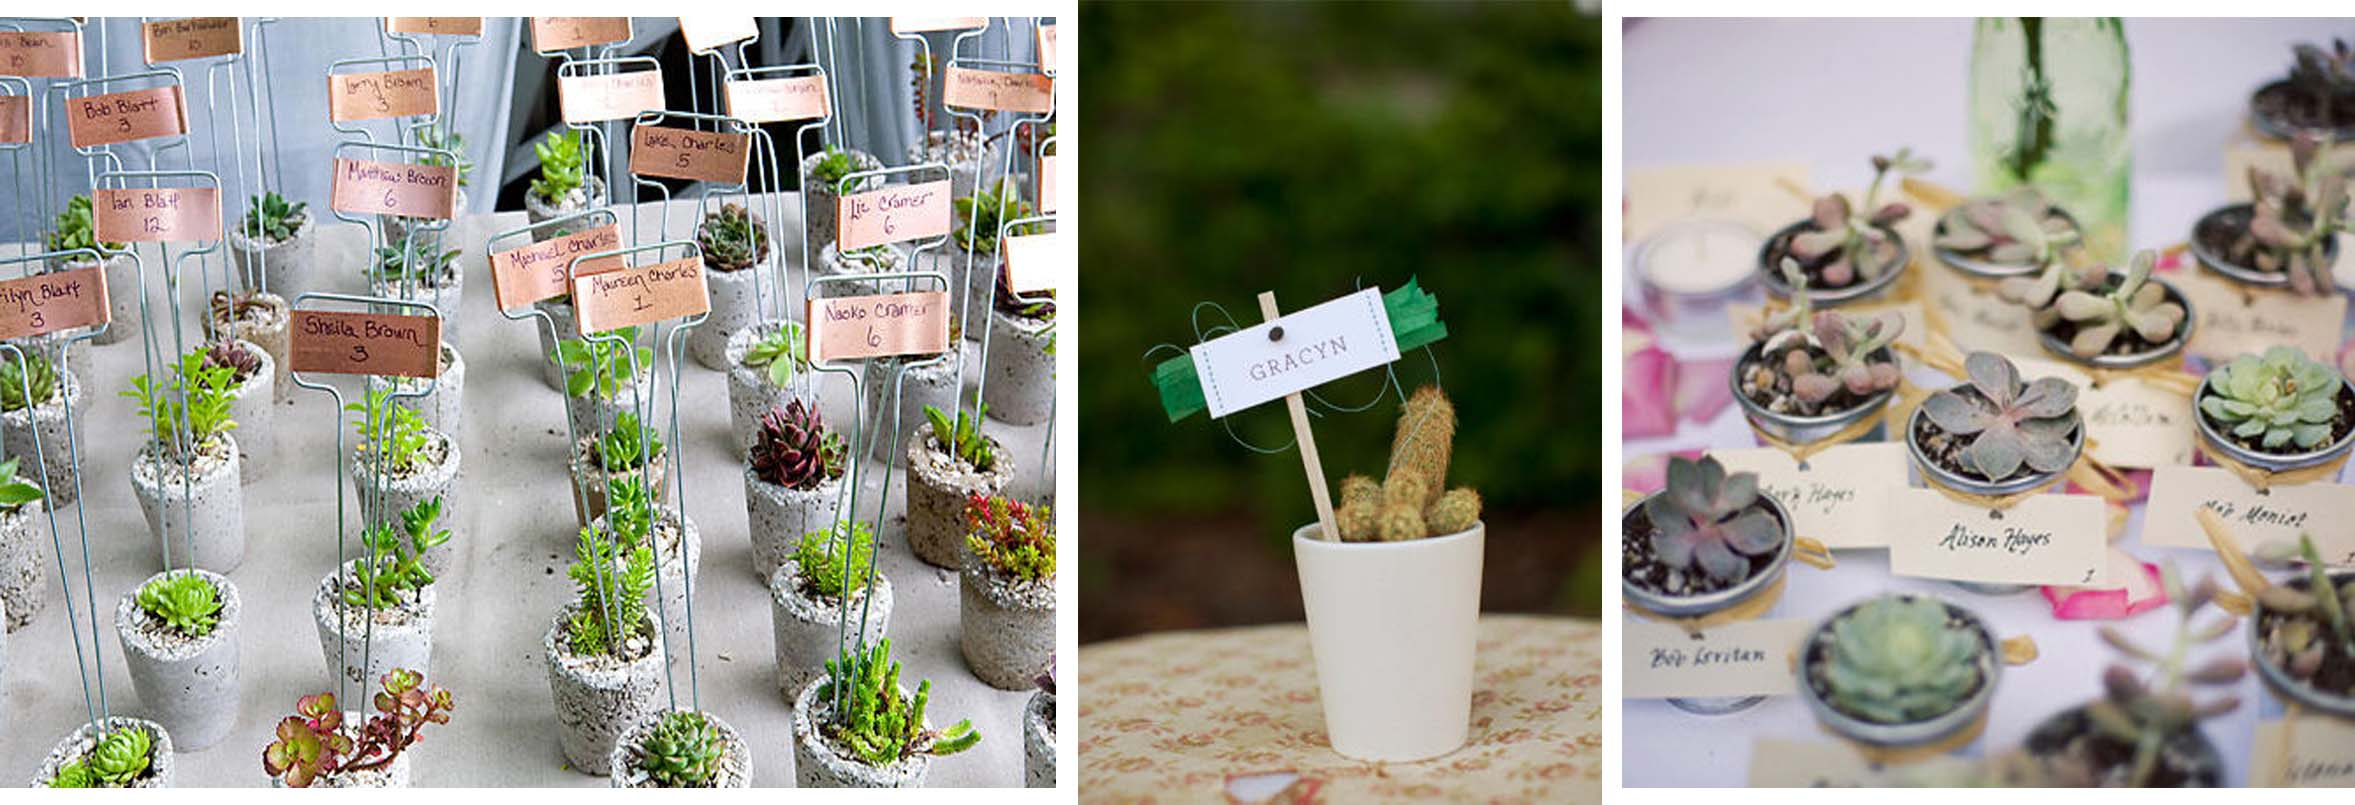 Wedding Gifts For The Guests: Wedding Gifts For Your Guests